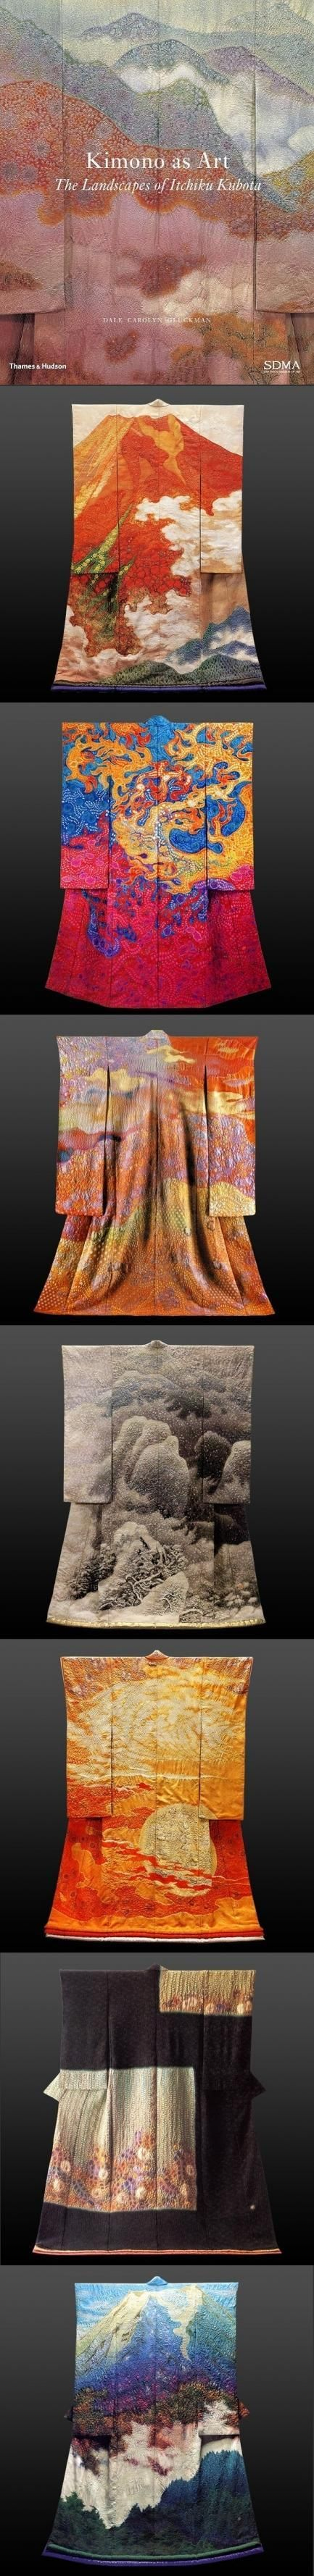 Kimono as Art: The Landscapes of Itchiku Kubota                                                                                                                                                      More